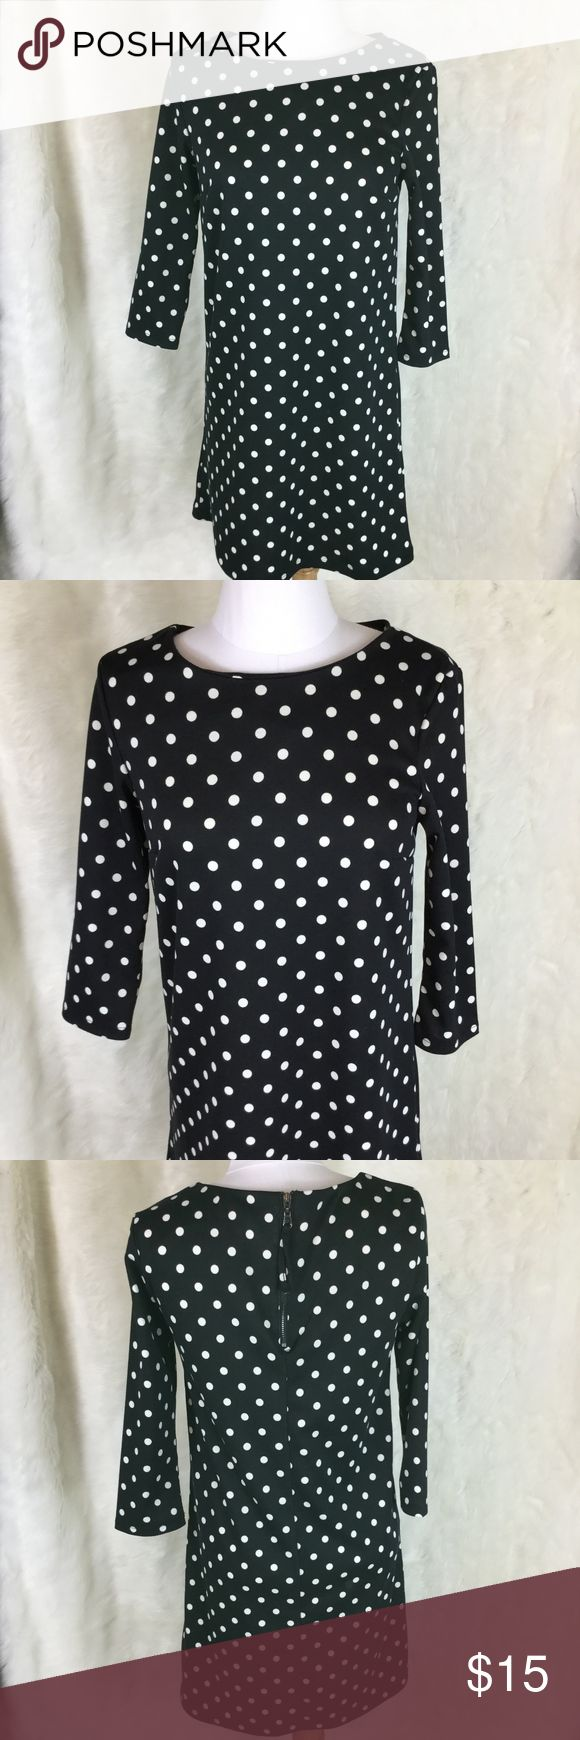 H&M Shift Dress NWT Size XS and in perfect NWT condition!  Black with cream polka dots!  Wonderful for work or a night out!  Knee length with 3/4 length sleeves.  Exposed zipper in the back! H&M Dresses Mini